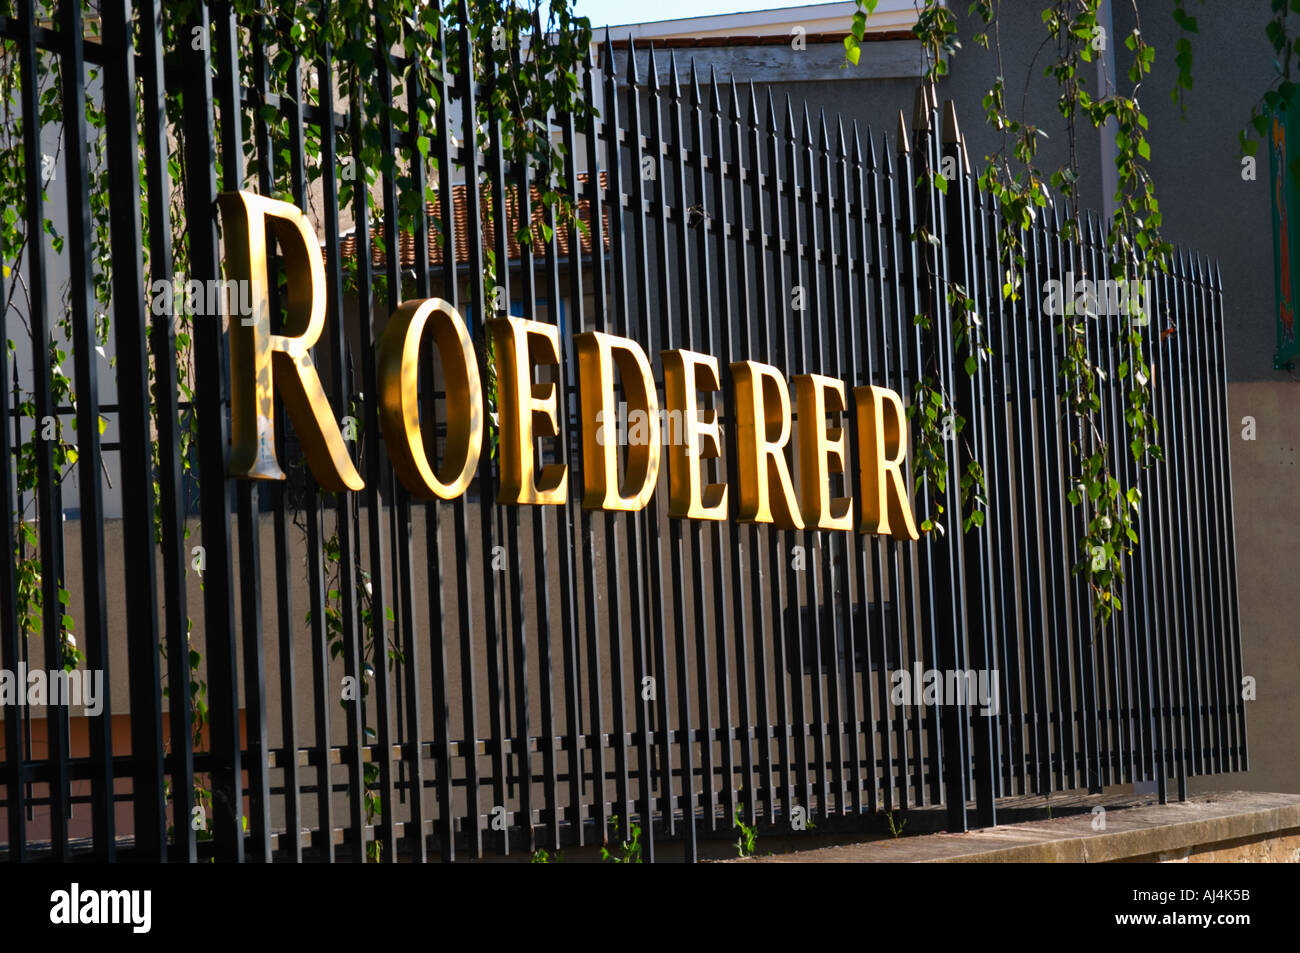 Wrought Iron Letters For Signs Wrought Iron Fence With Golden Letters Shining In The Setting Sun